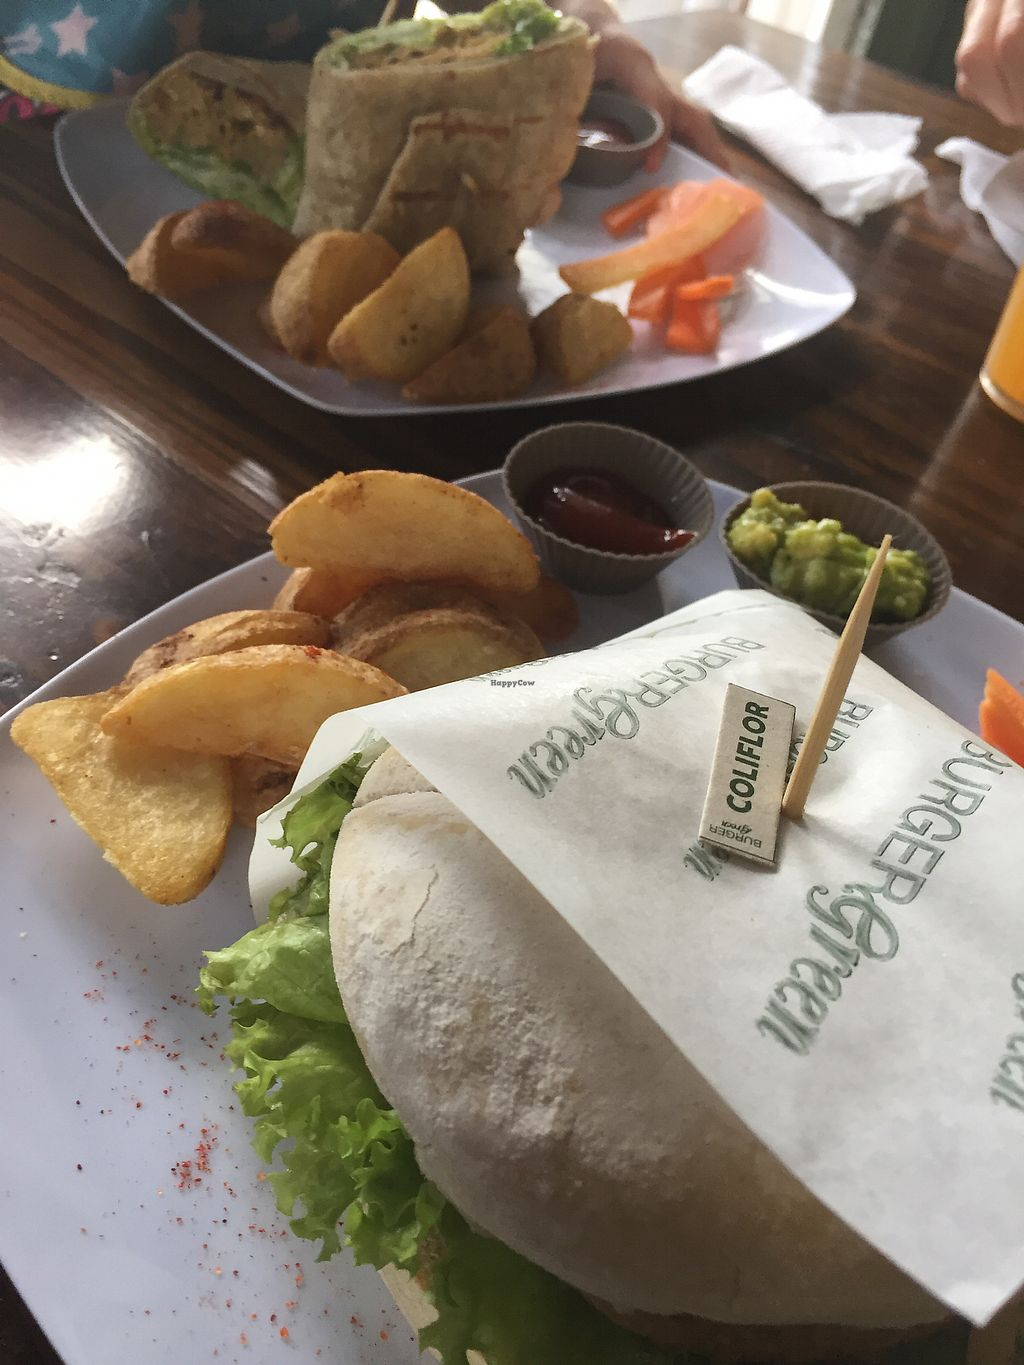 """Photo of Burger Green   by <a href=""""/members/profile/weganmama"""">weganmama</a> <br/>vegan wrap and vegan burger...... delicious !!! <br/> August 13, 2017  - <a href='/contact/abuse/image/79351/292459'>Report</a>"""